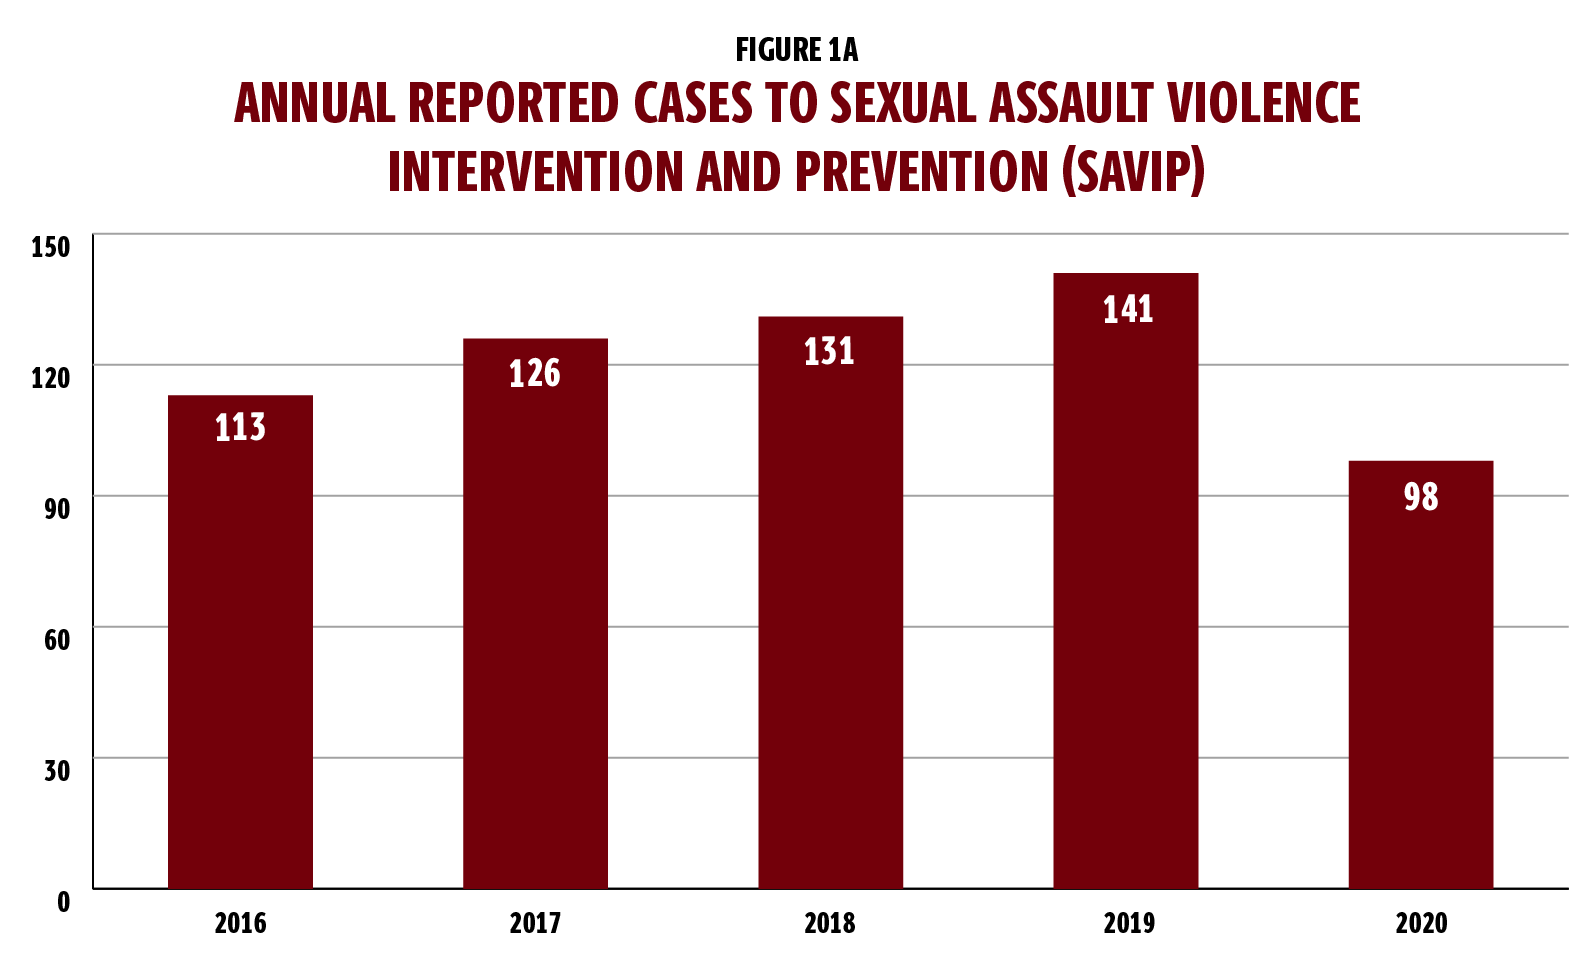 Figure 1a is a bar graph showing annual cases reported to Sexual Assault Violence Intervention and Prevention (also known as SAVIP). The graph shows there were 113 cases in 2016; 126 cases in 2017; 131 cases in 2018; 141 cases in 2019 and 98 cases in 2020.